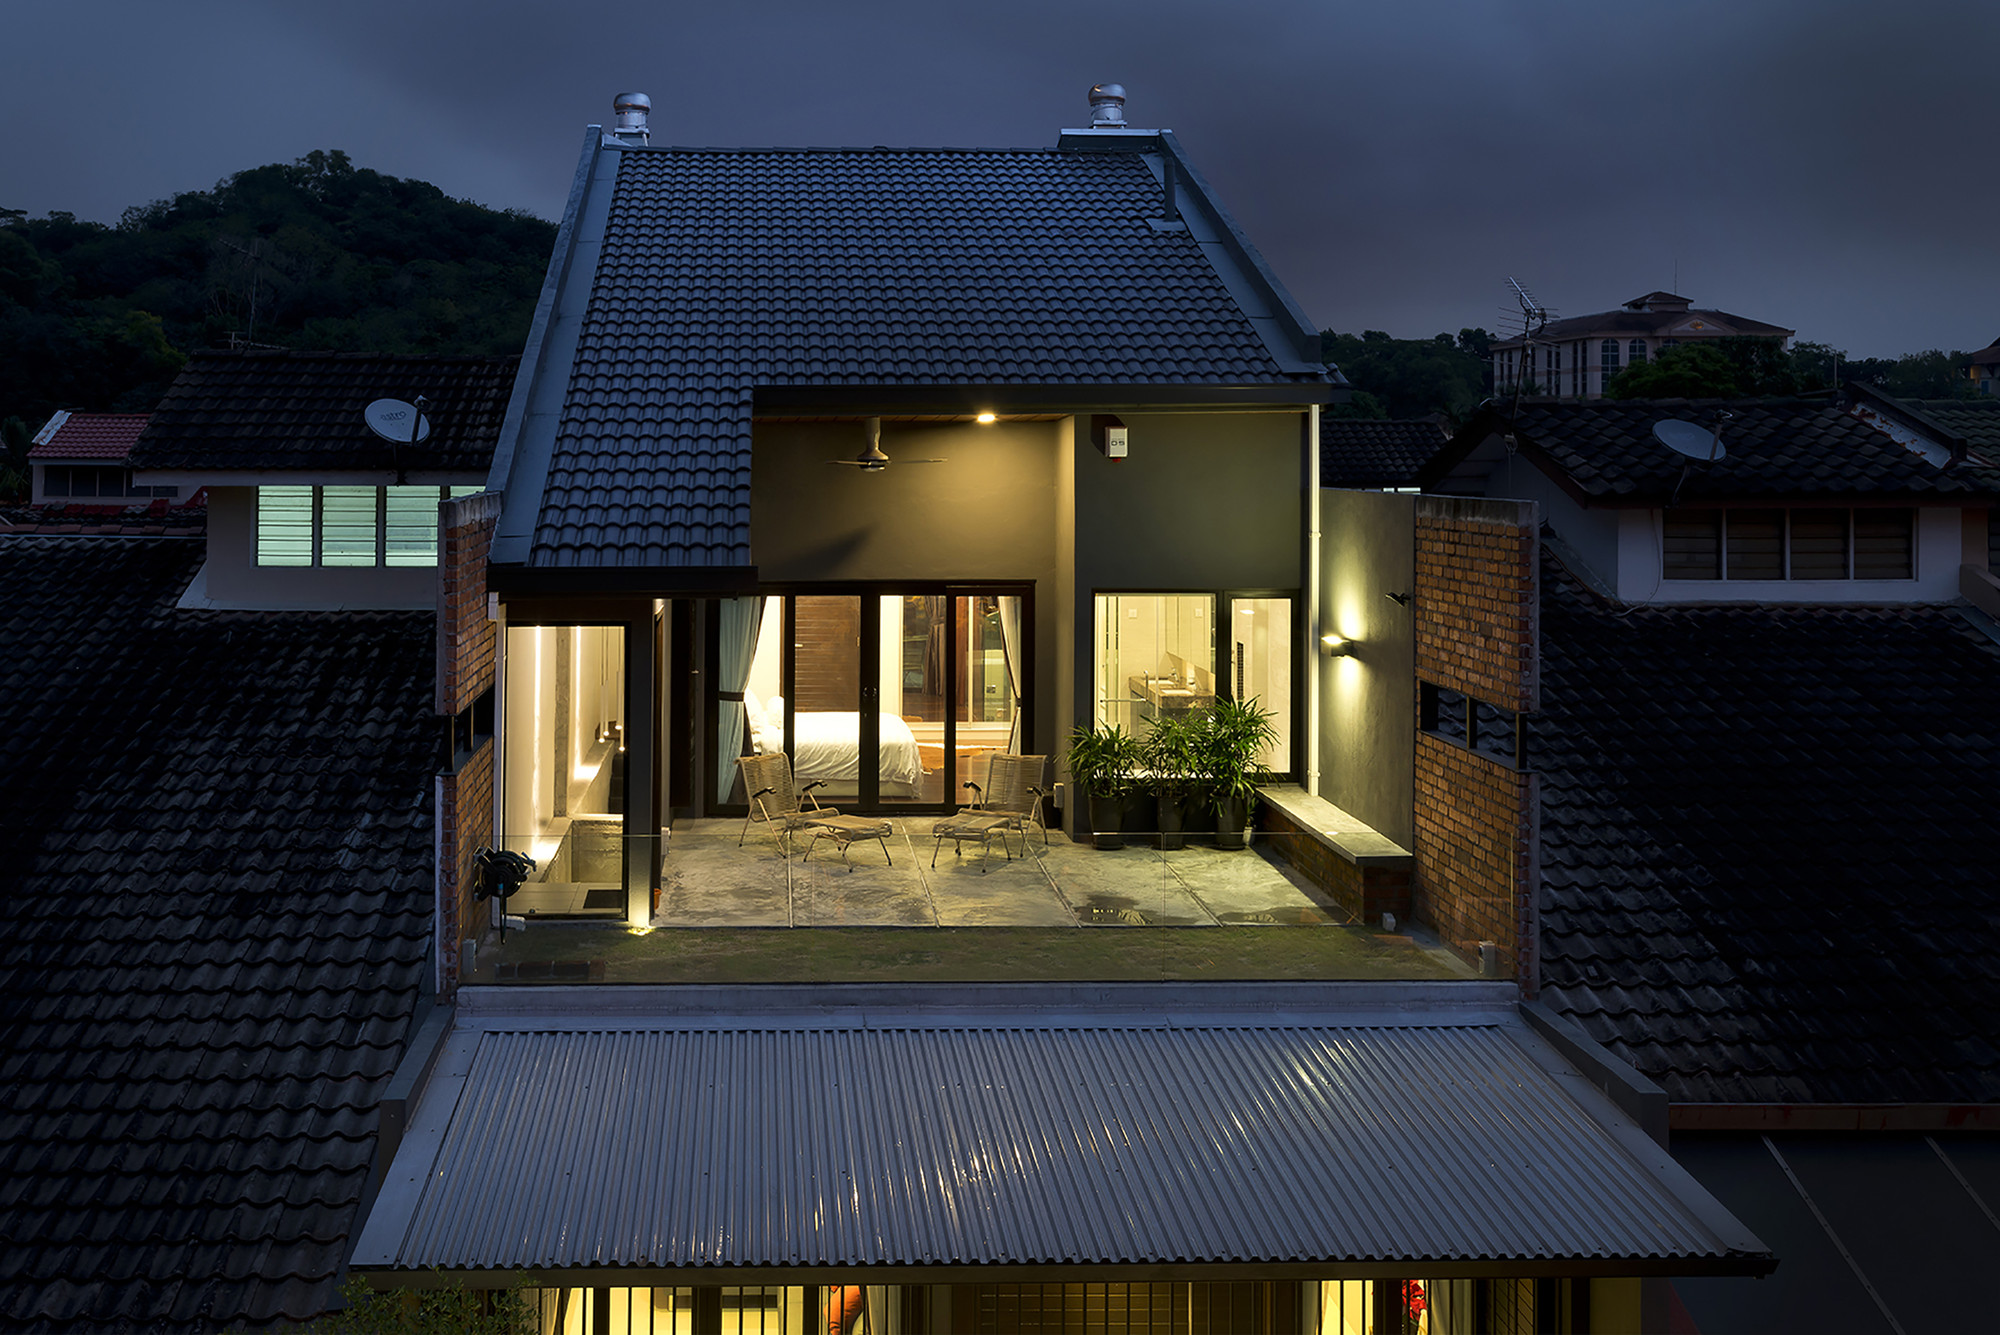 23 terrace drtan lm architect archdaily for House design malaysia architecture